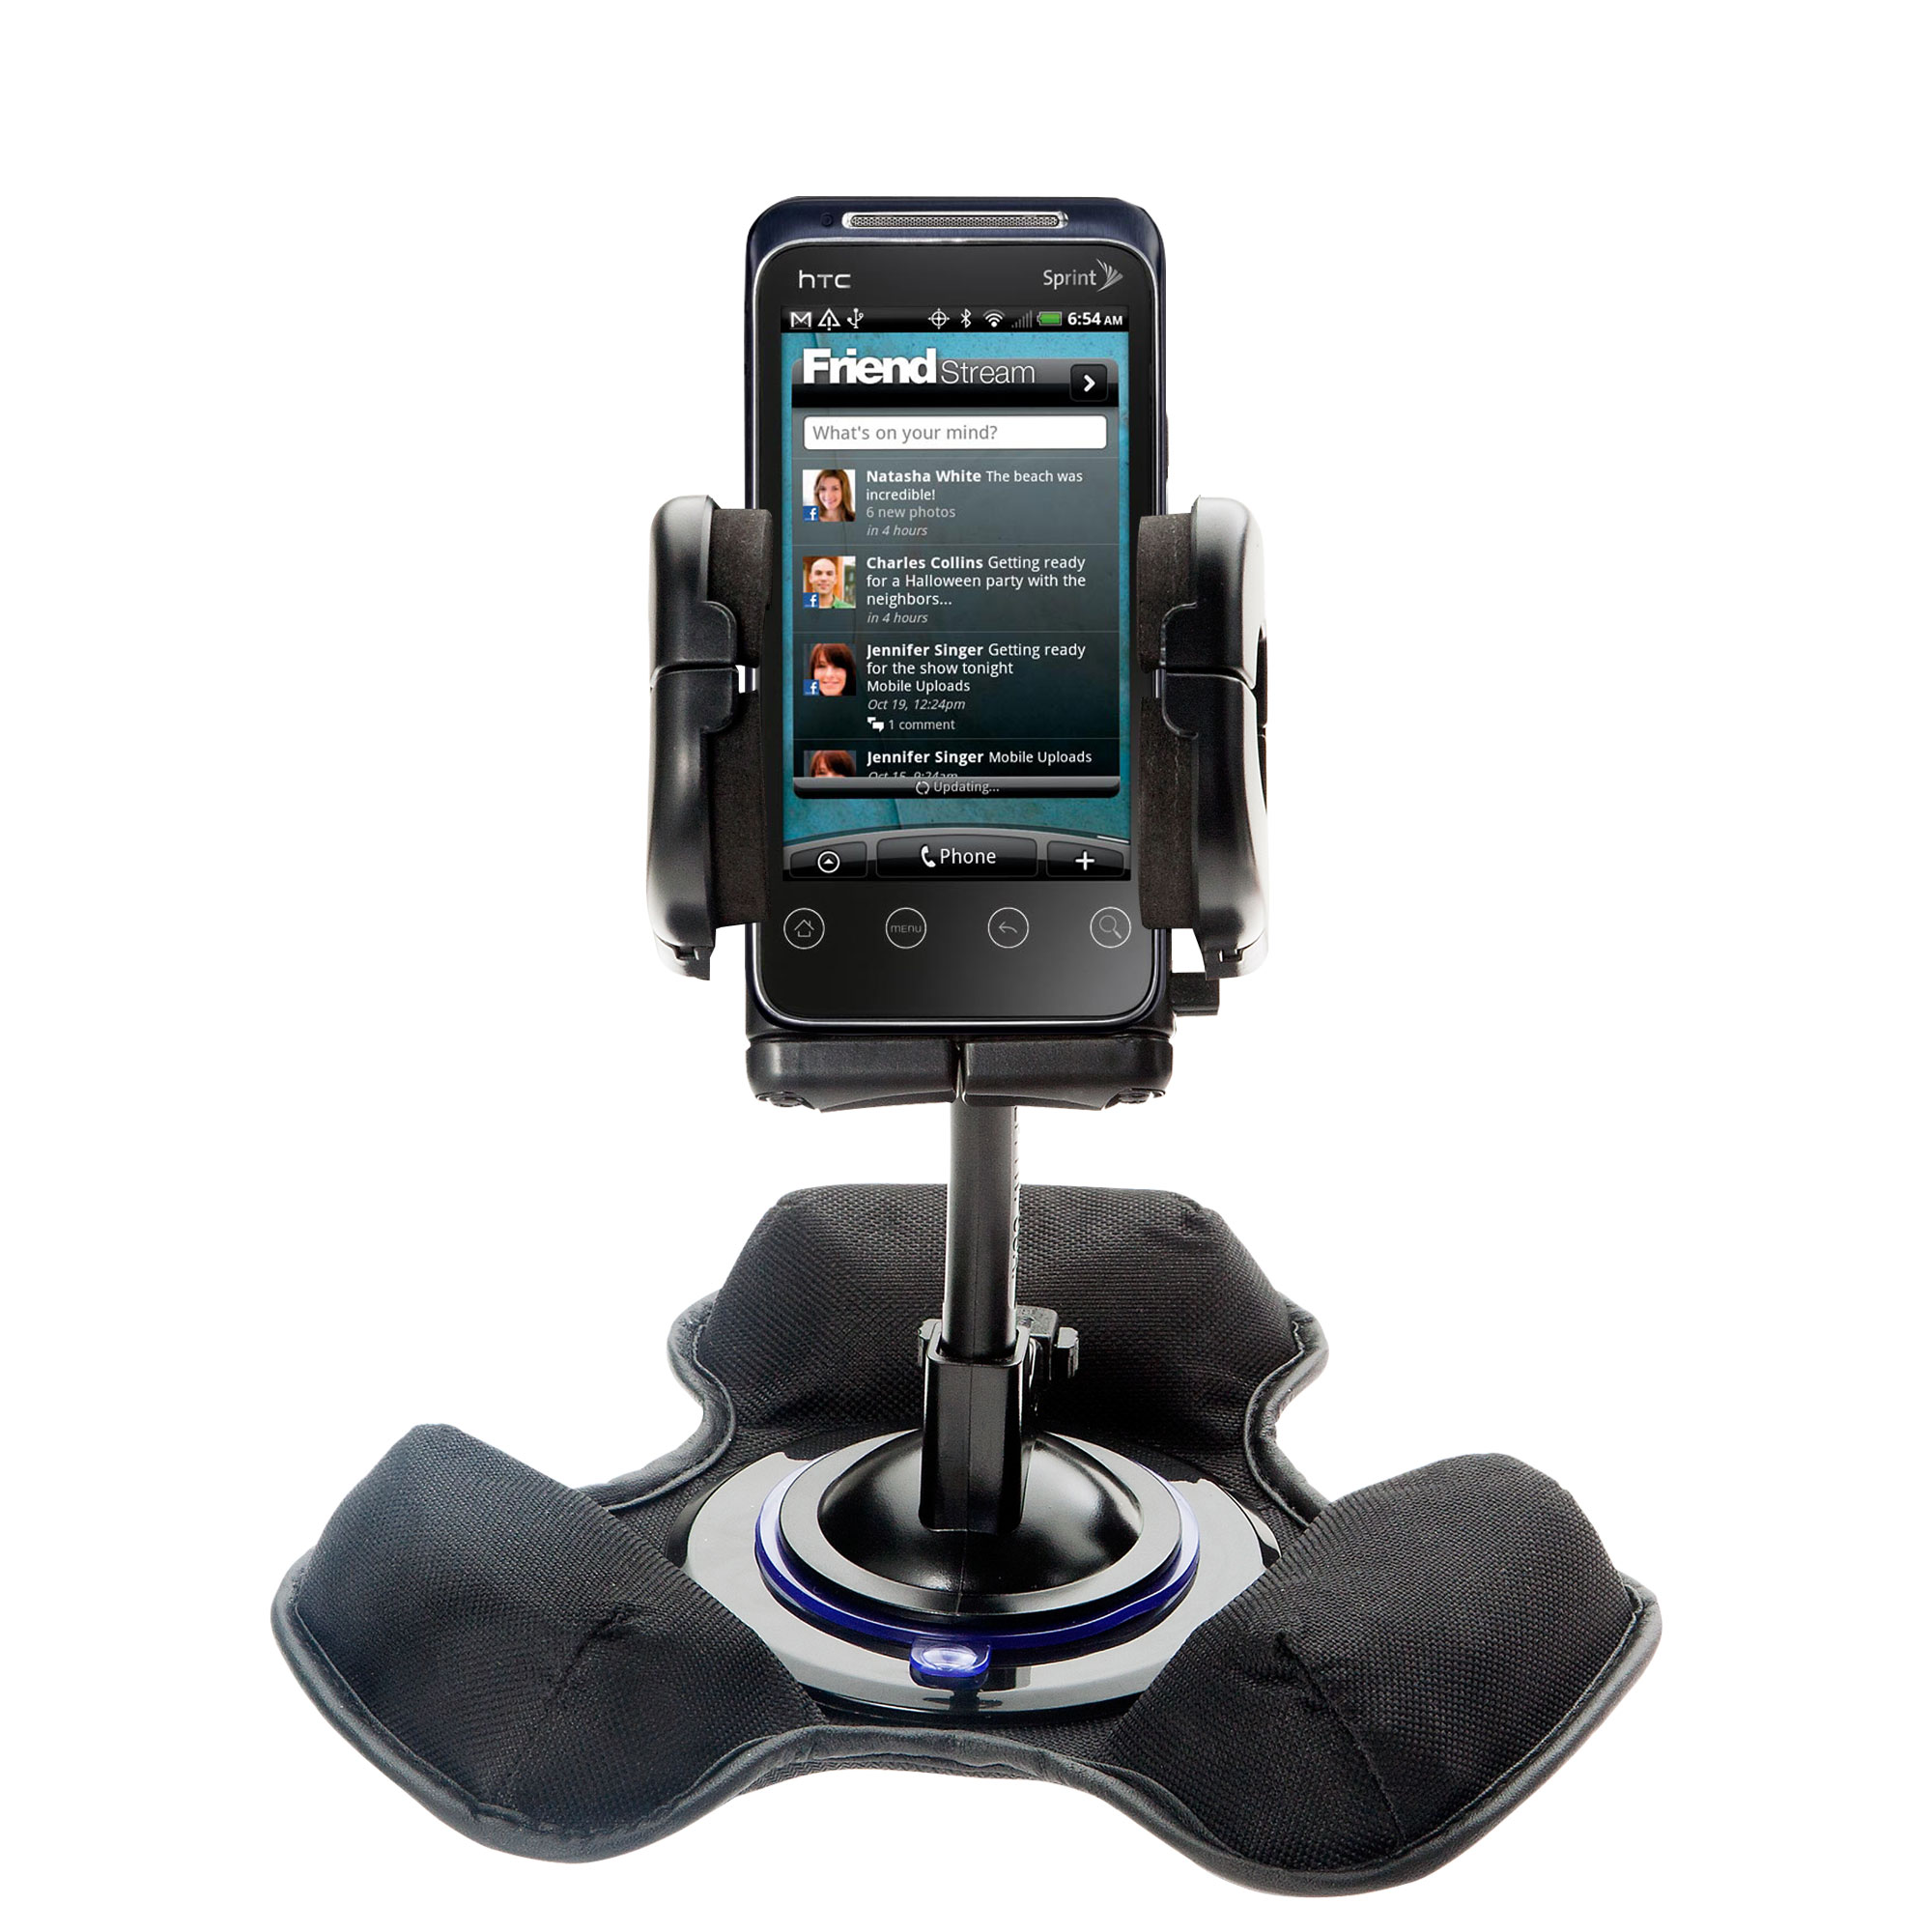 Dash and Windshield Holder compatible with the HTC Supersonic